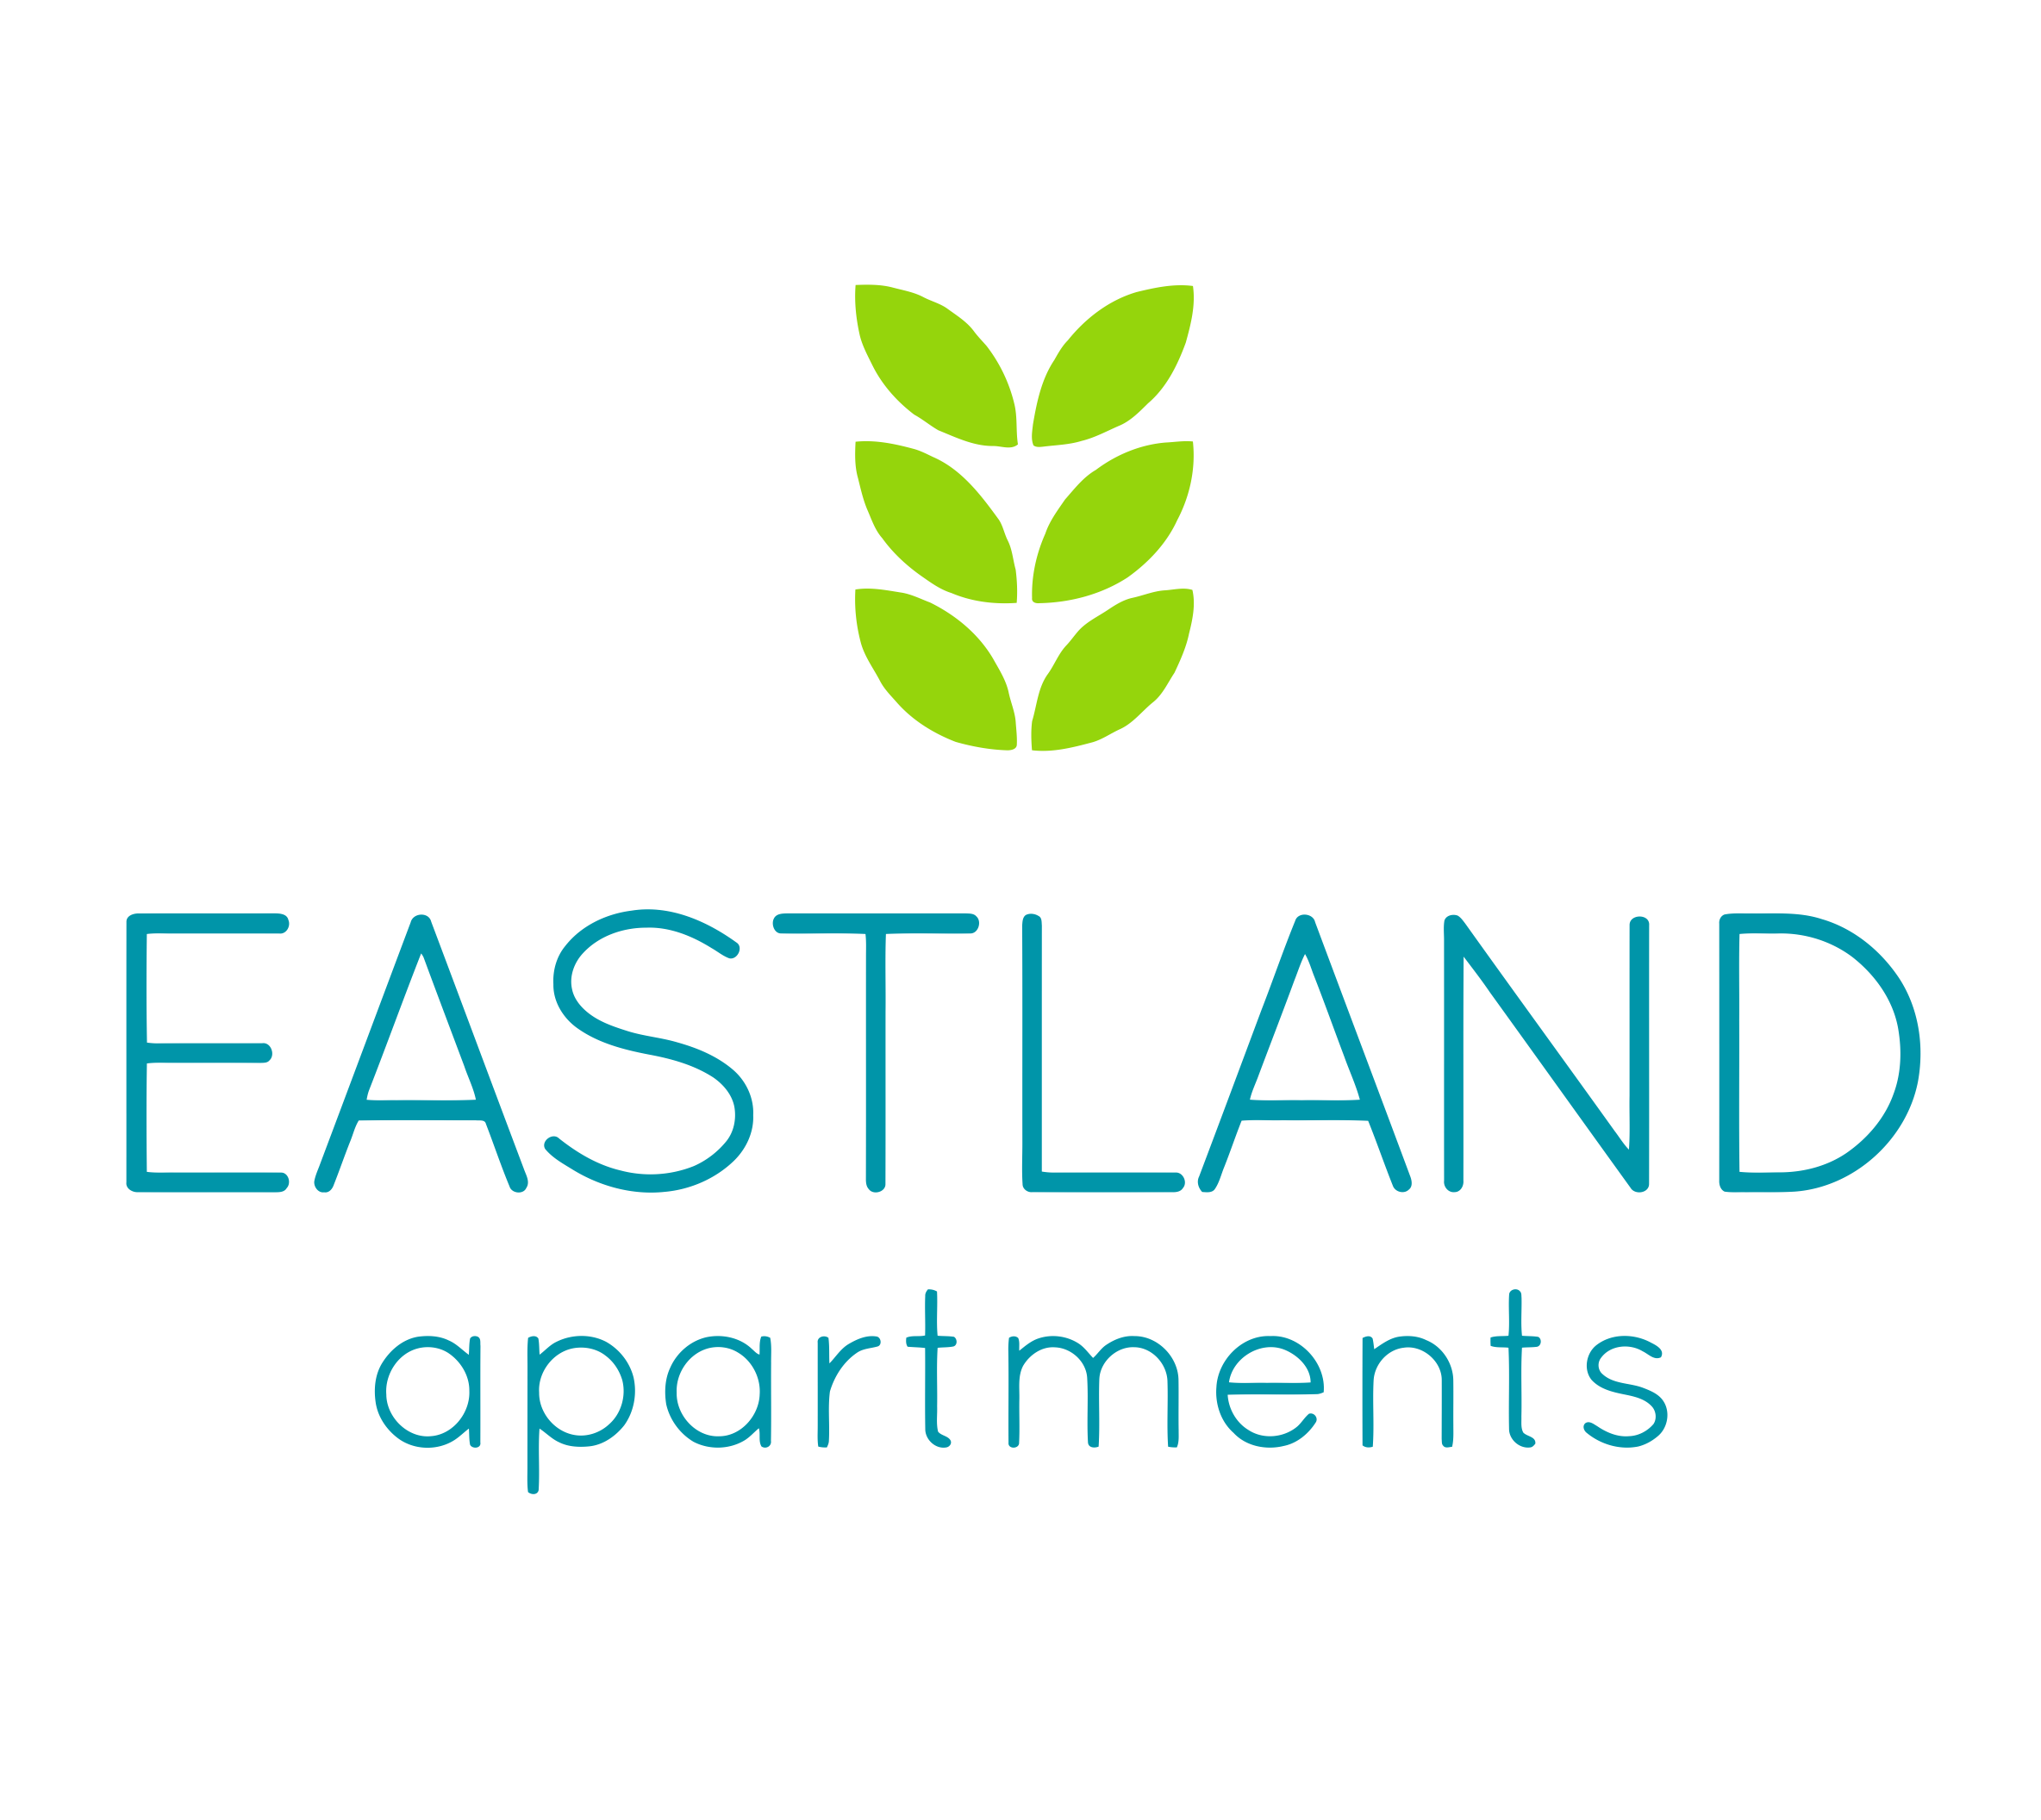 Eastland Apartments: Apartments In Evansville, IN